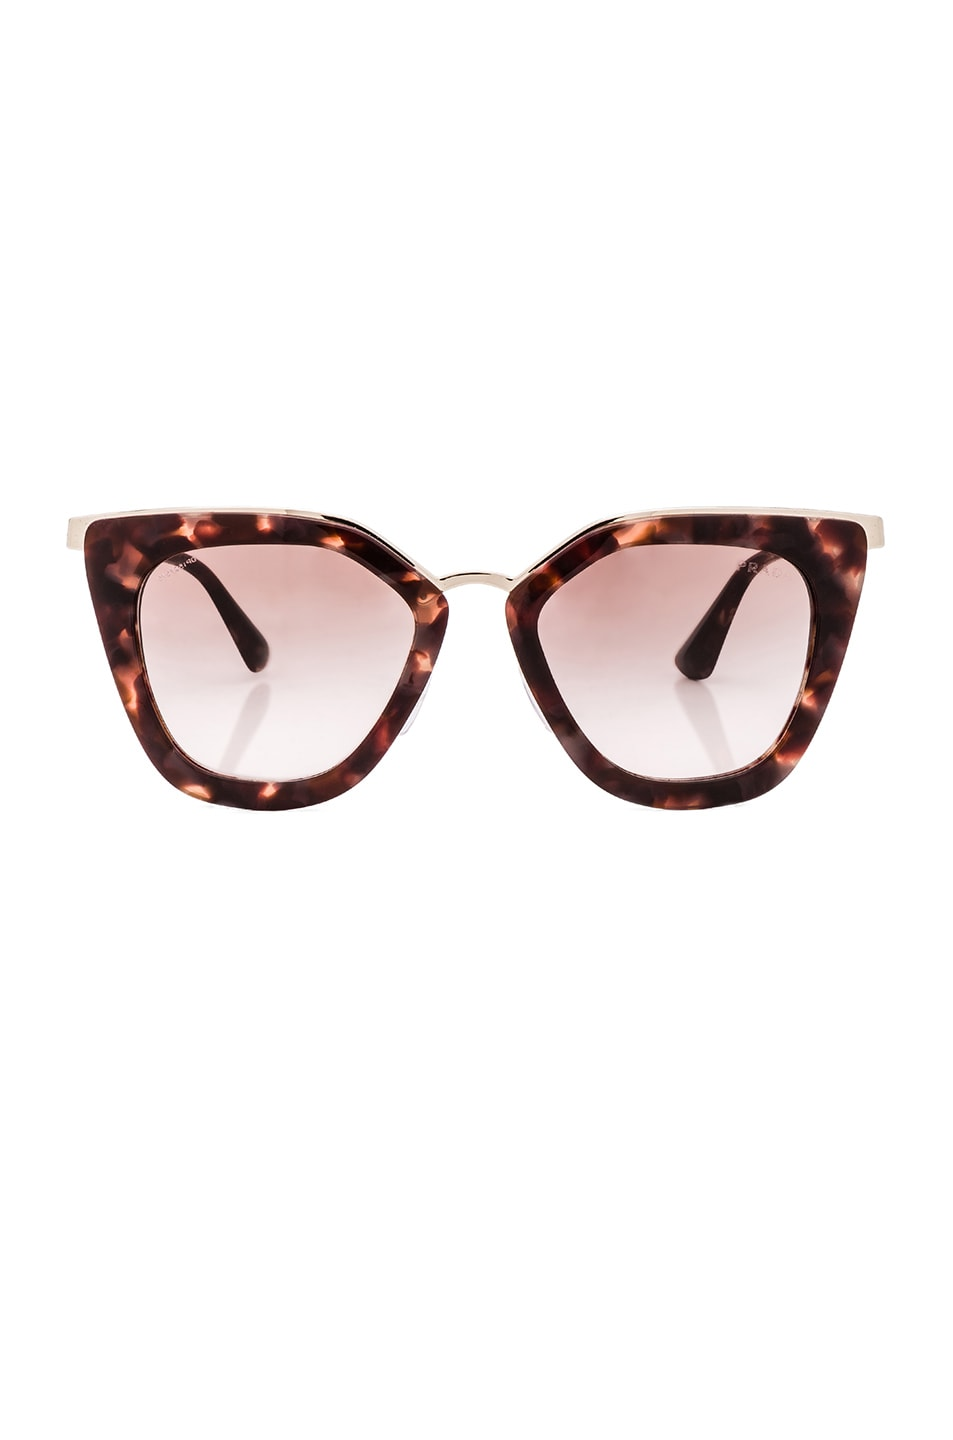 Image 1 of Prada Square Sunglasses in Spotted Brown Pink